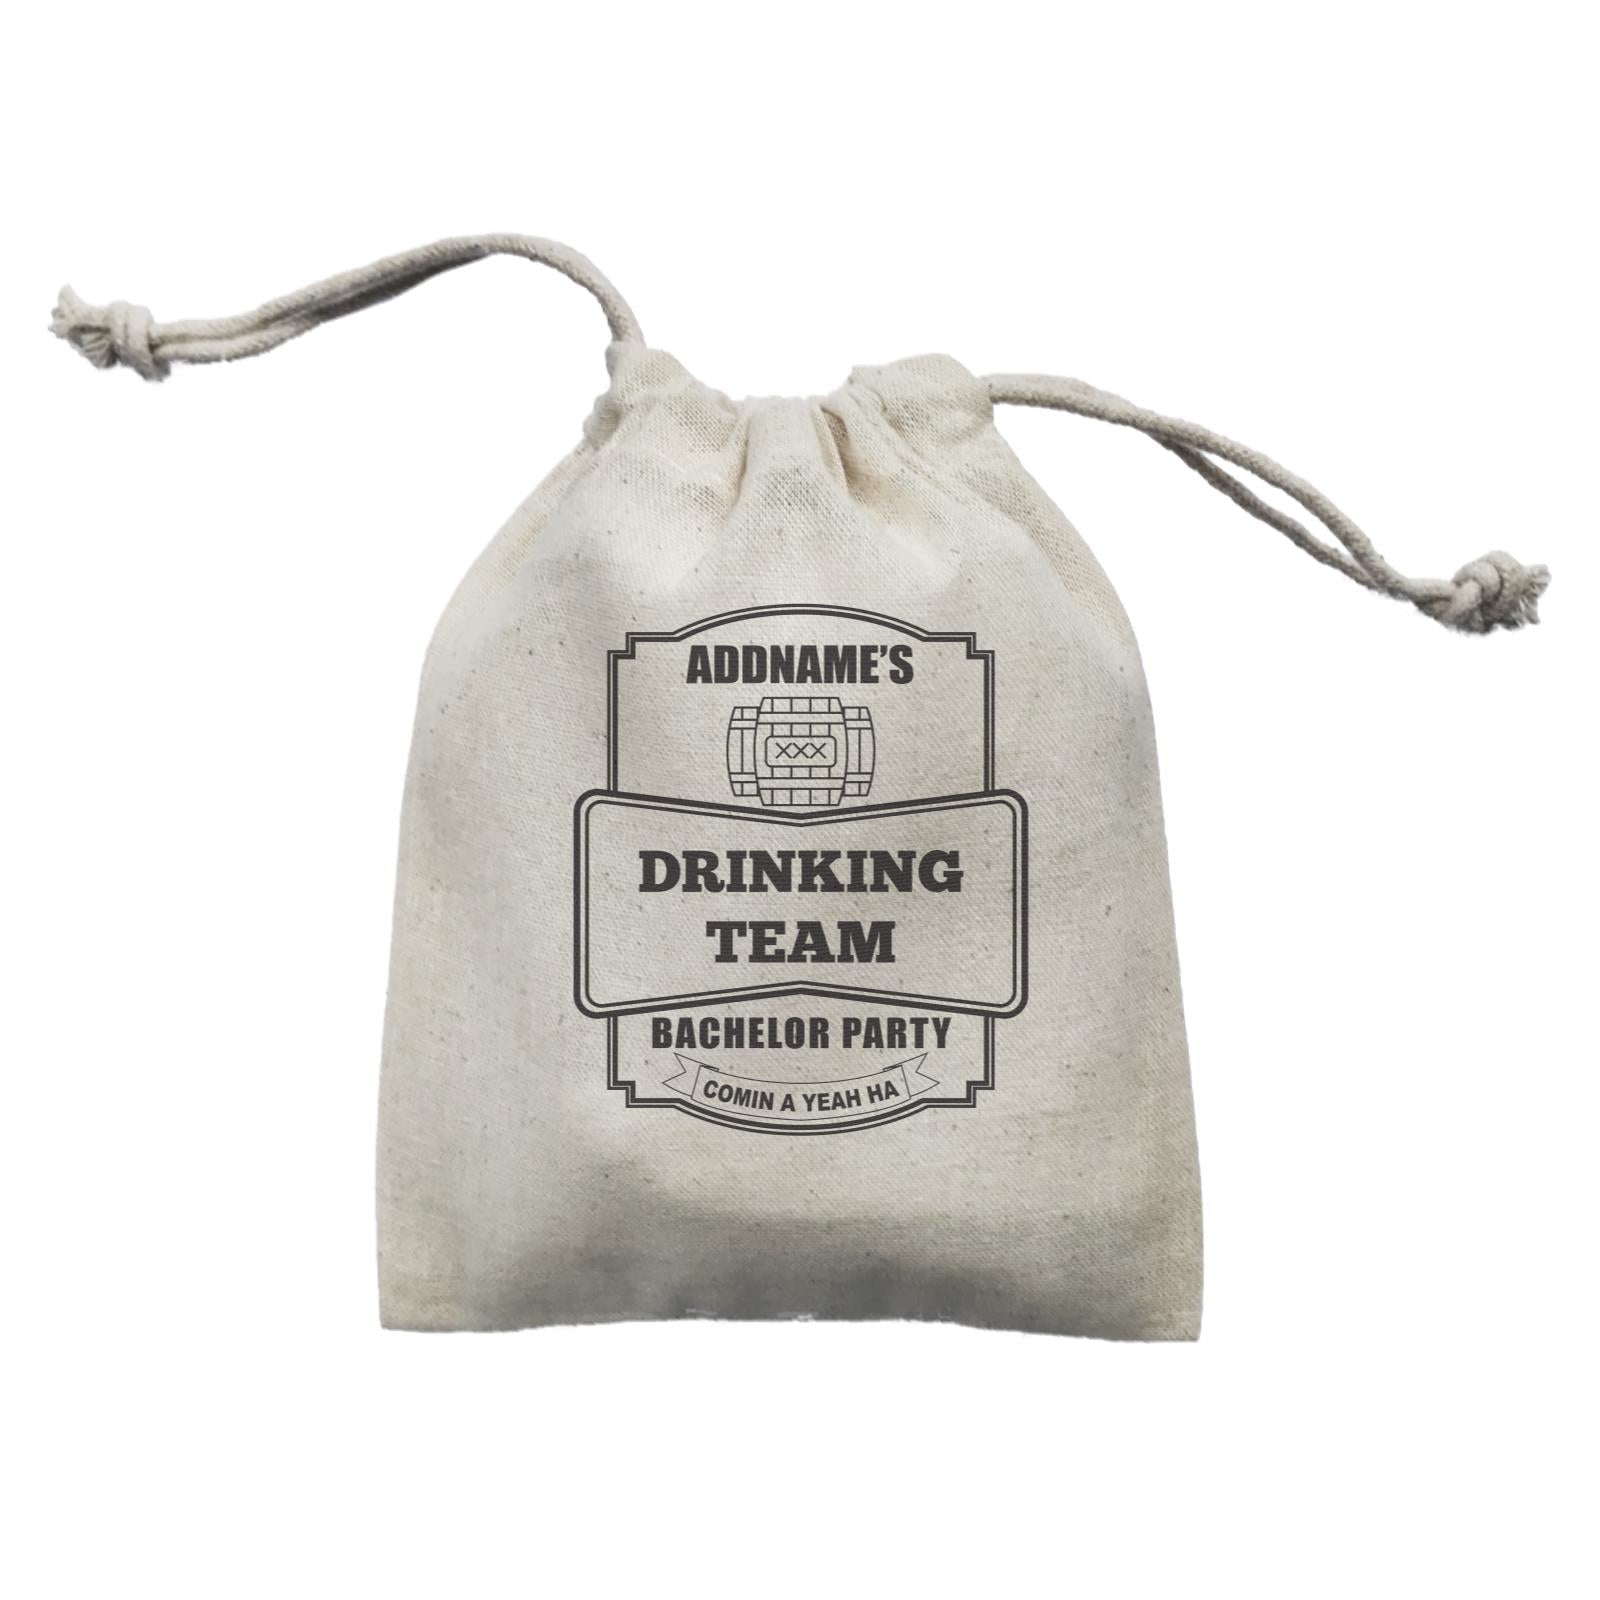 Addname Drinking Team In Bachelor Party Mini Accessories Mini Pouch